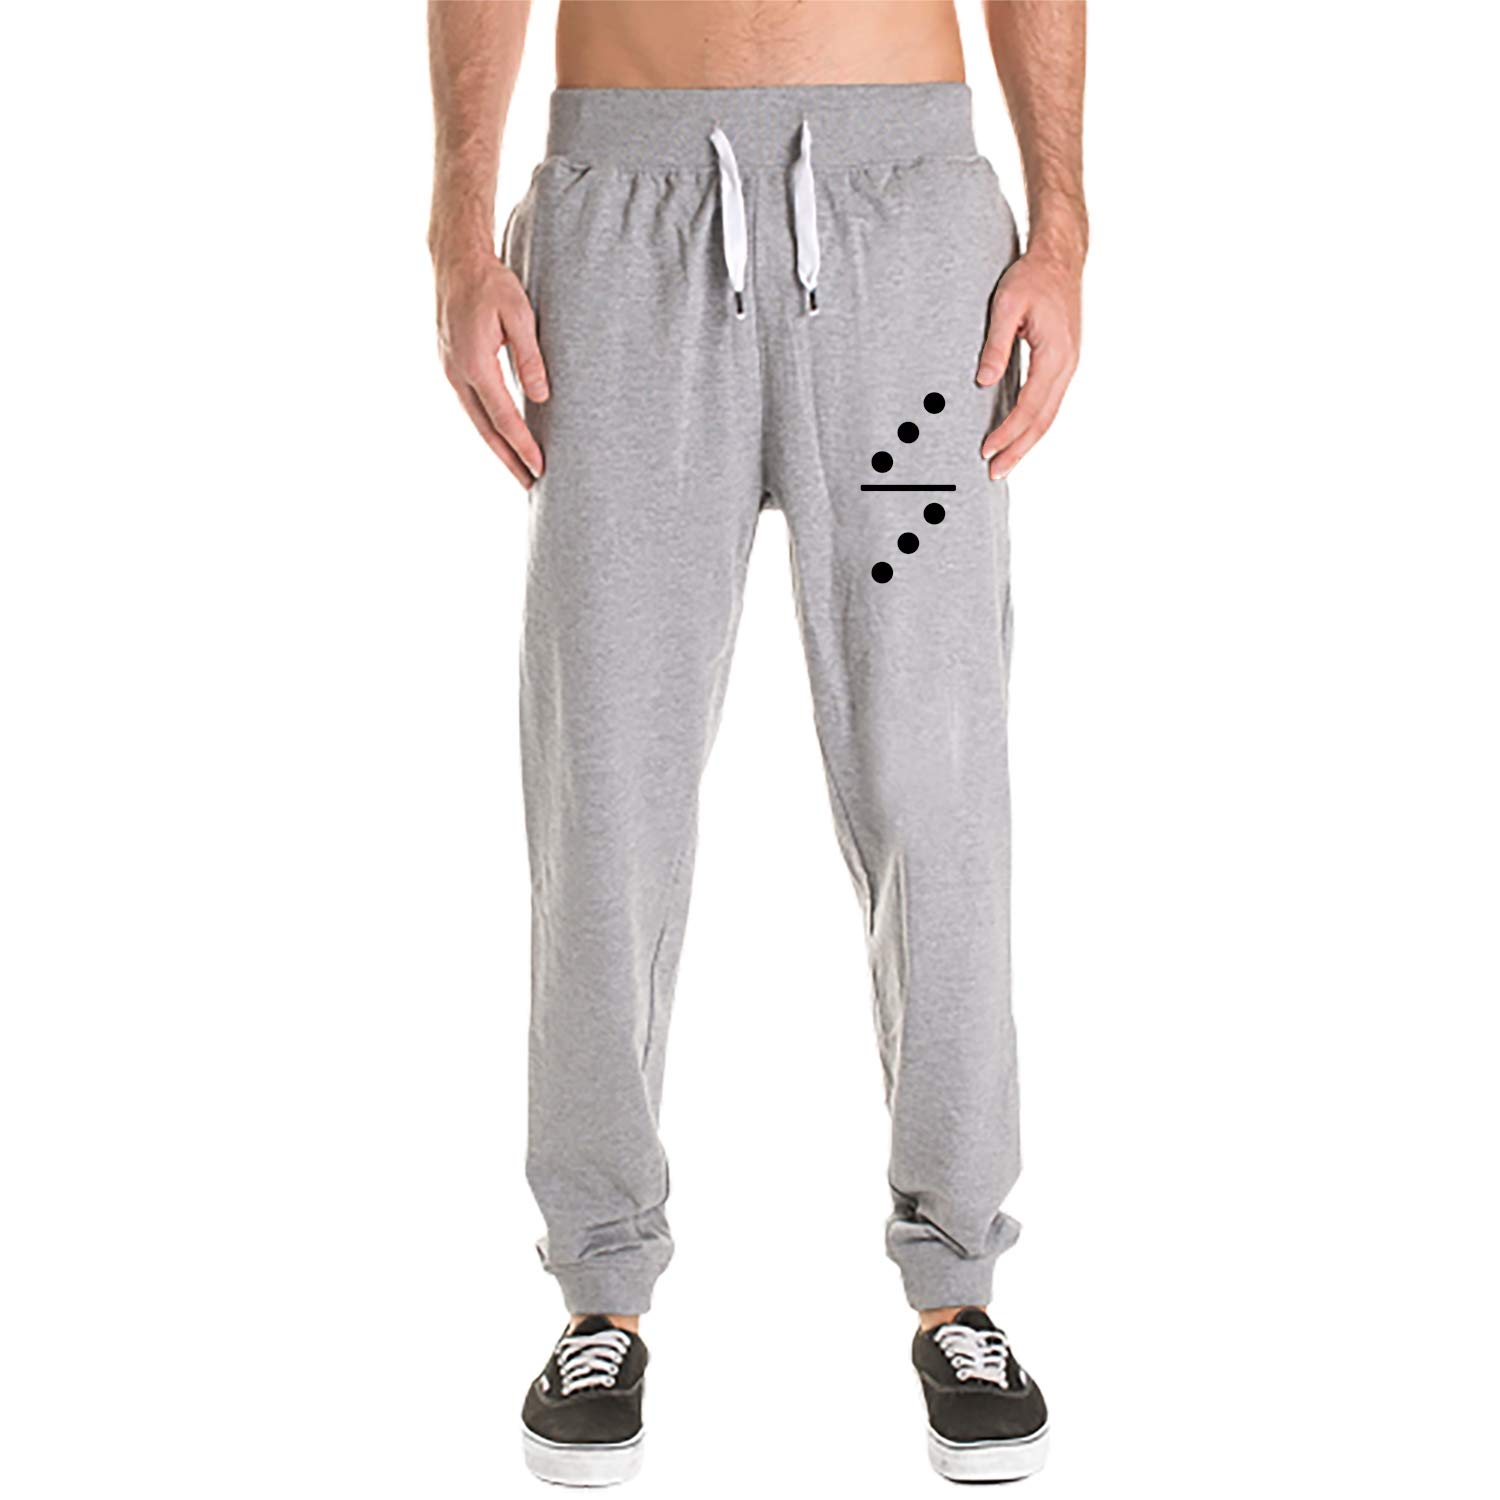 Alpha.F Mens Workout Running Pants Casual Sporting Pant with Pockets